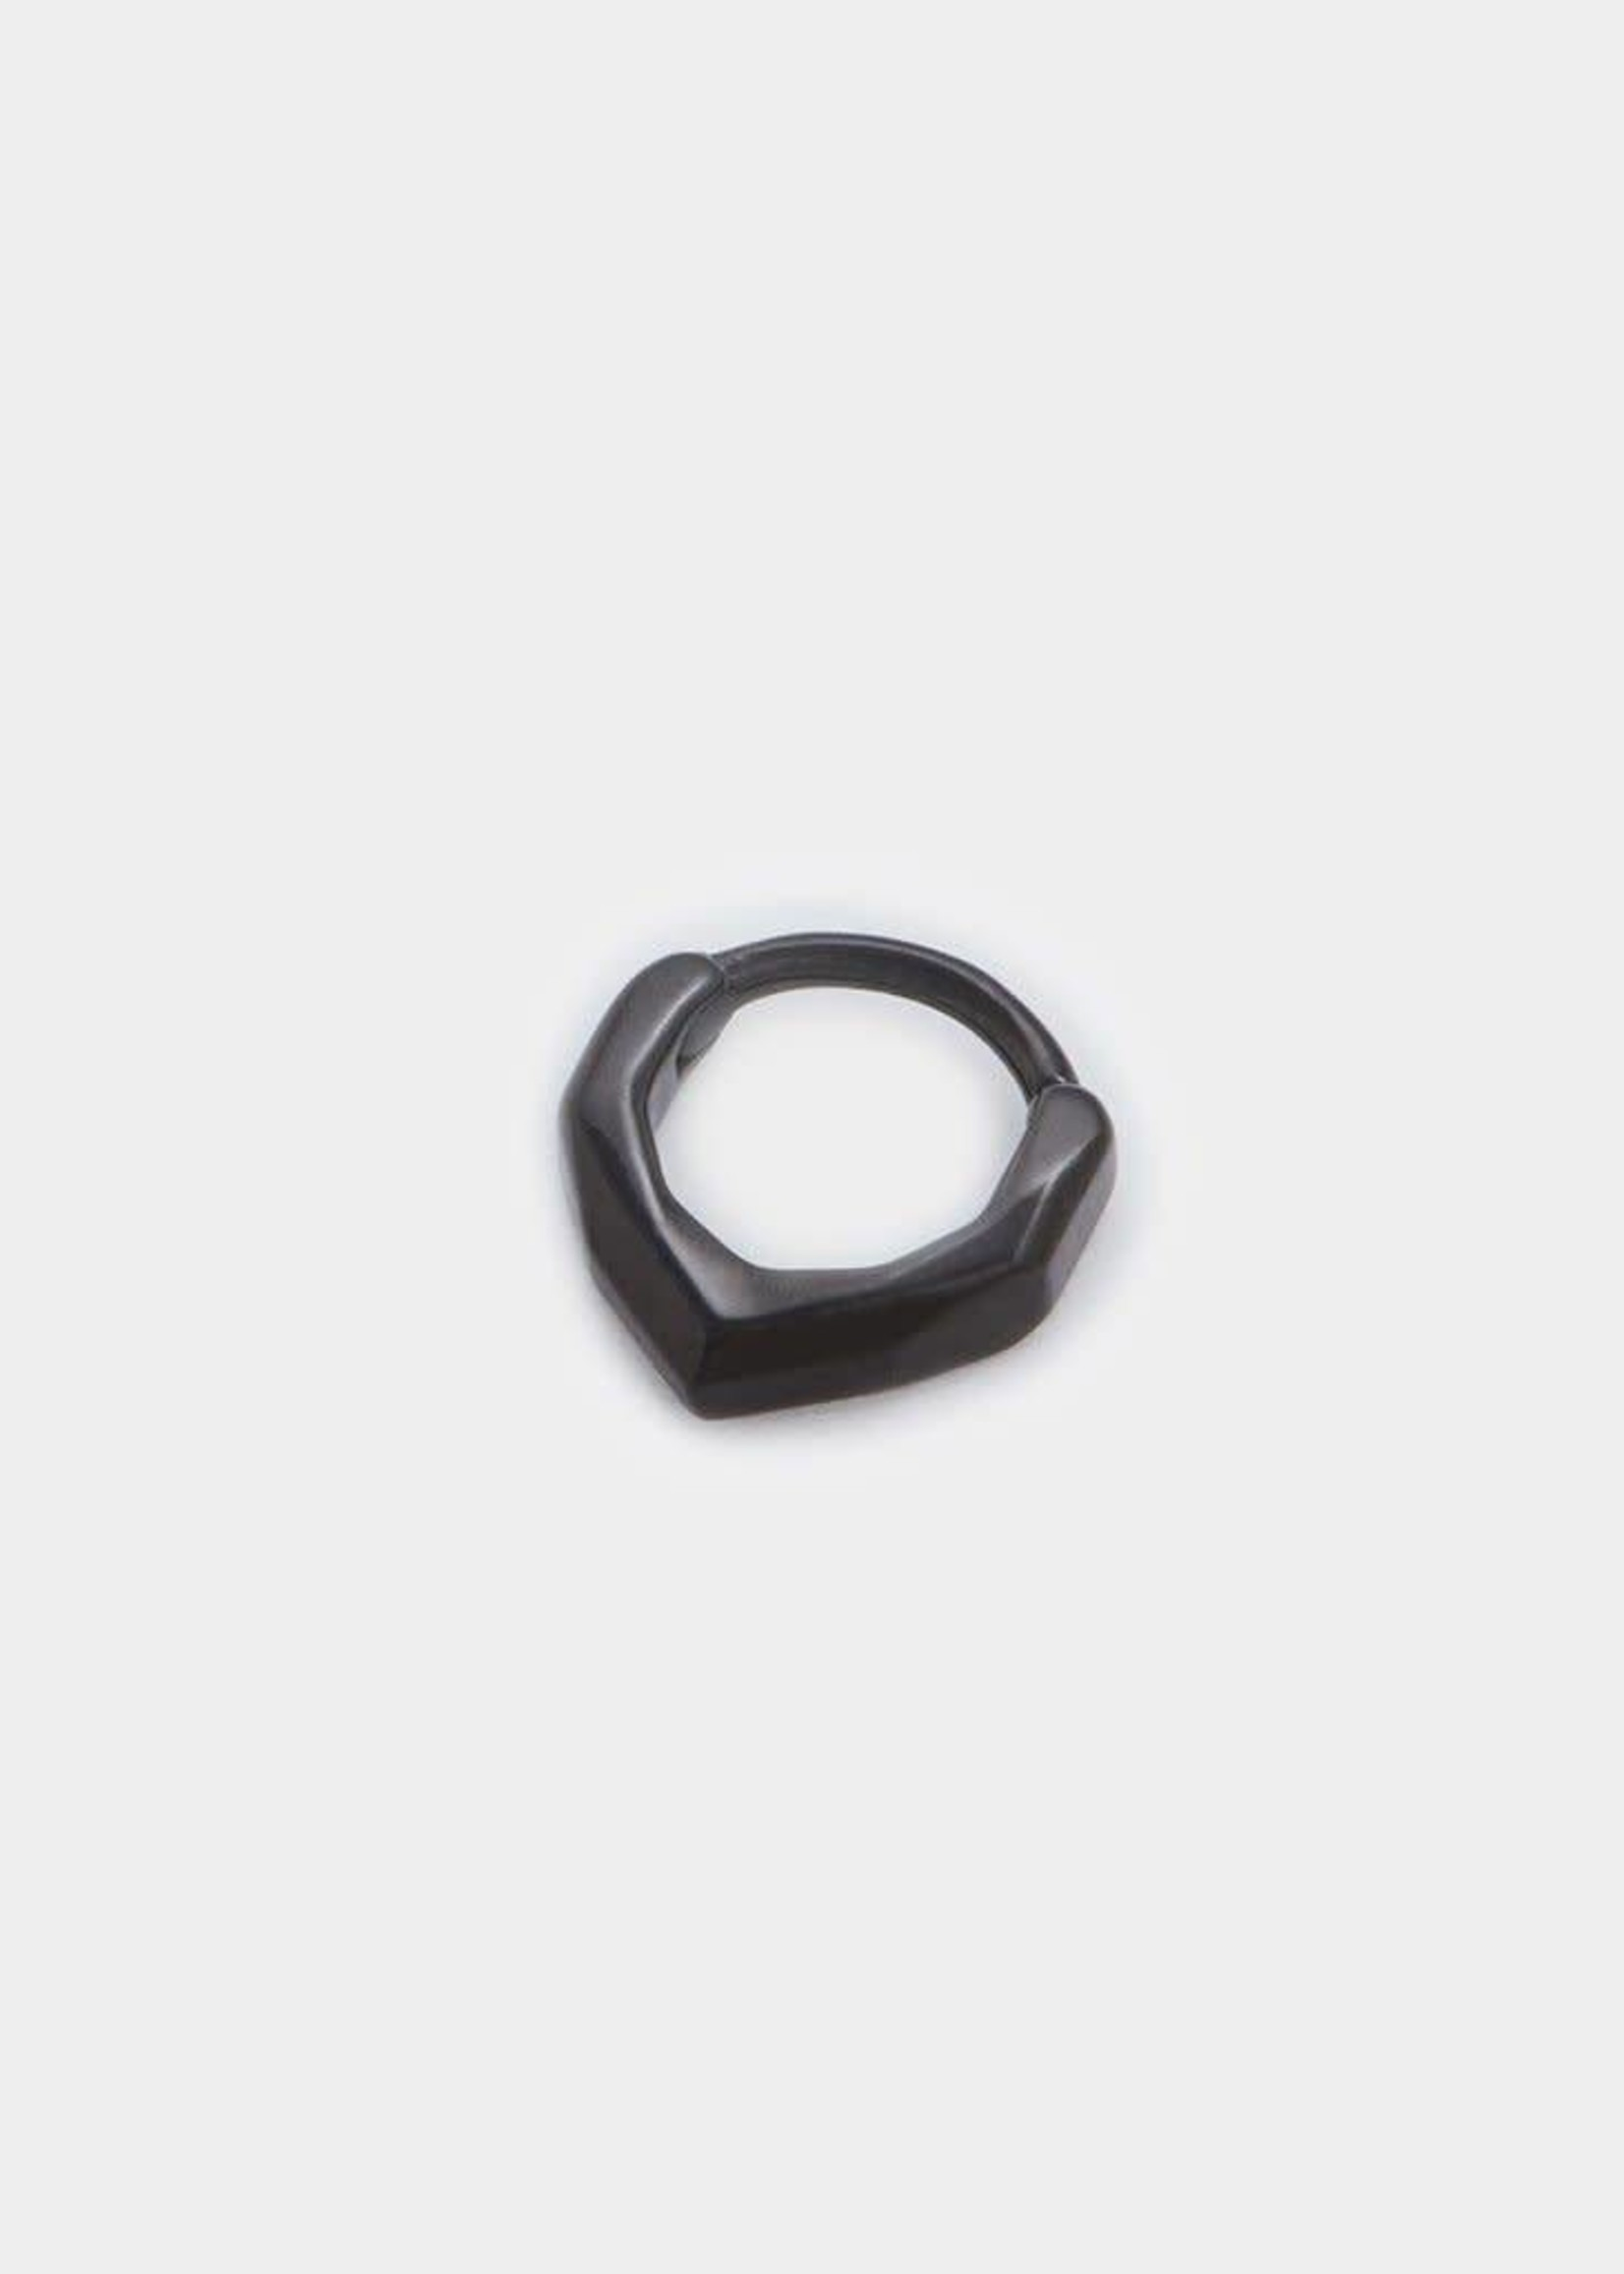 14g Tether Obsidian Archive Clicker